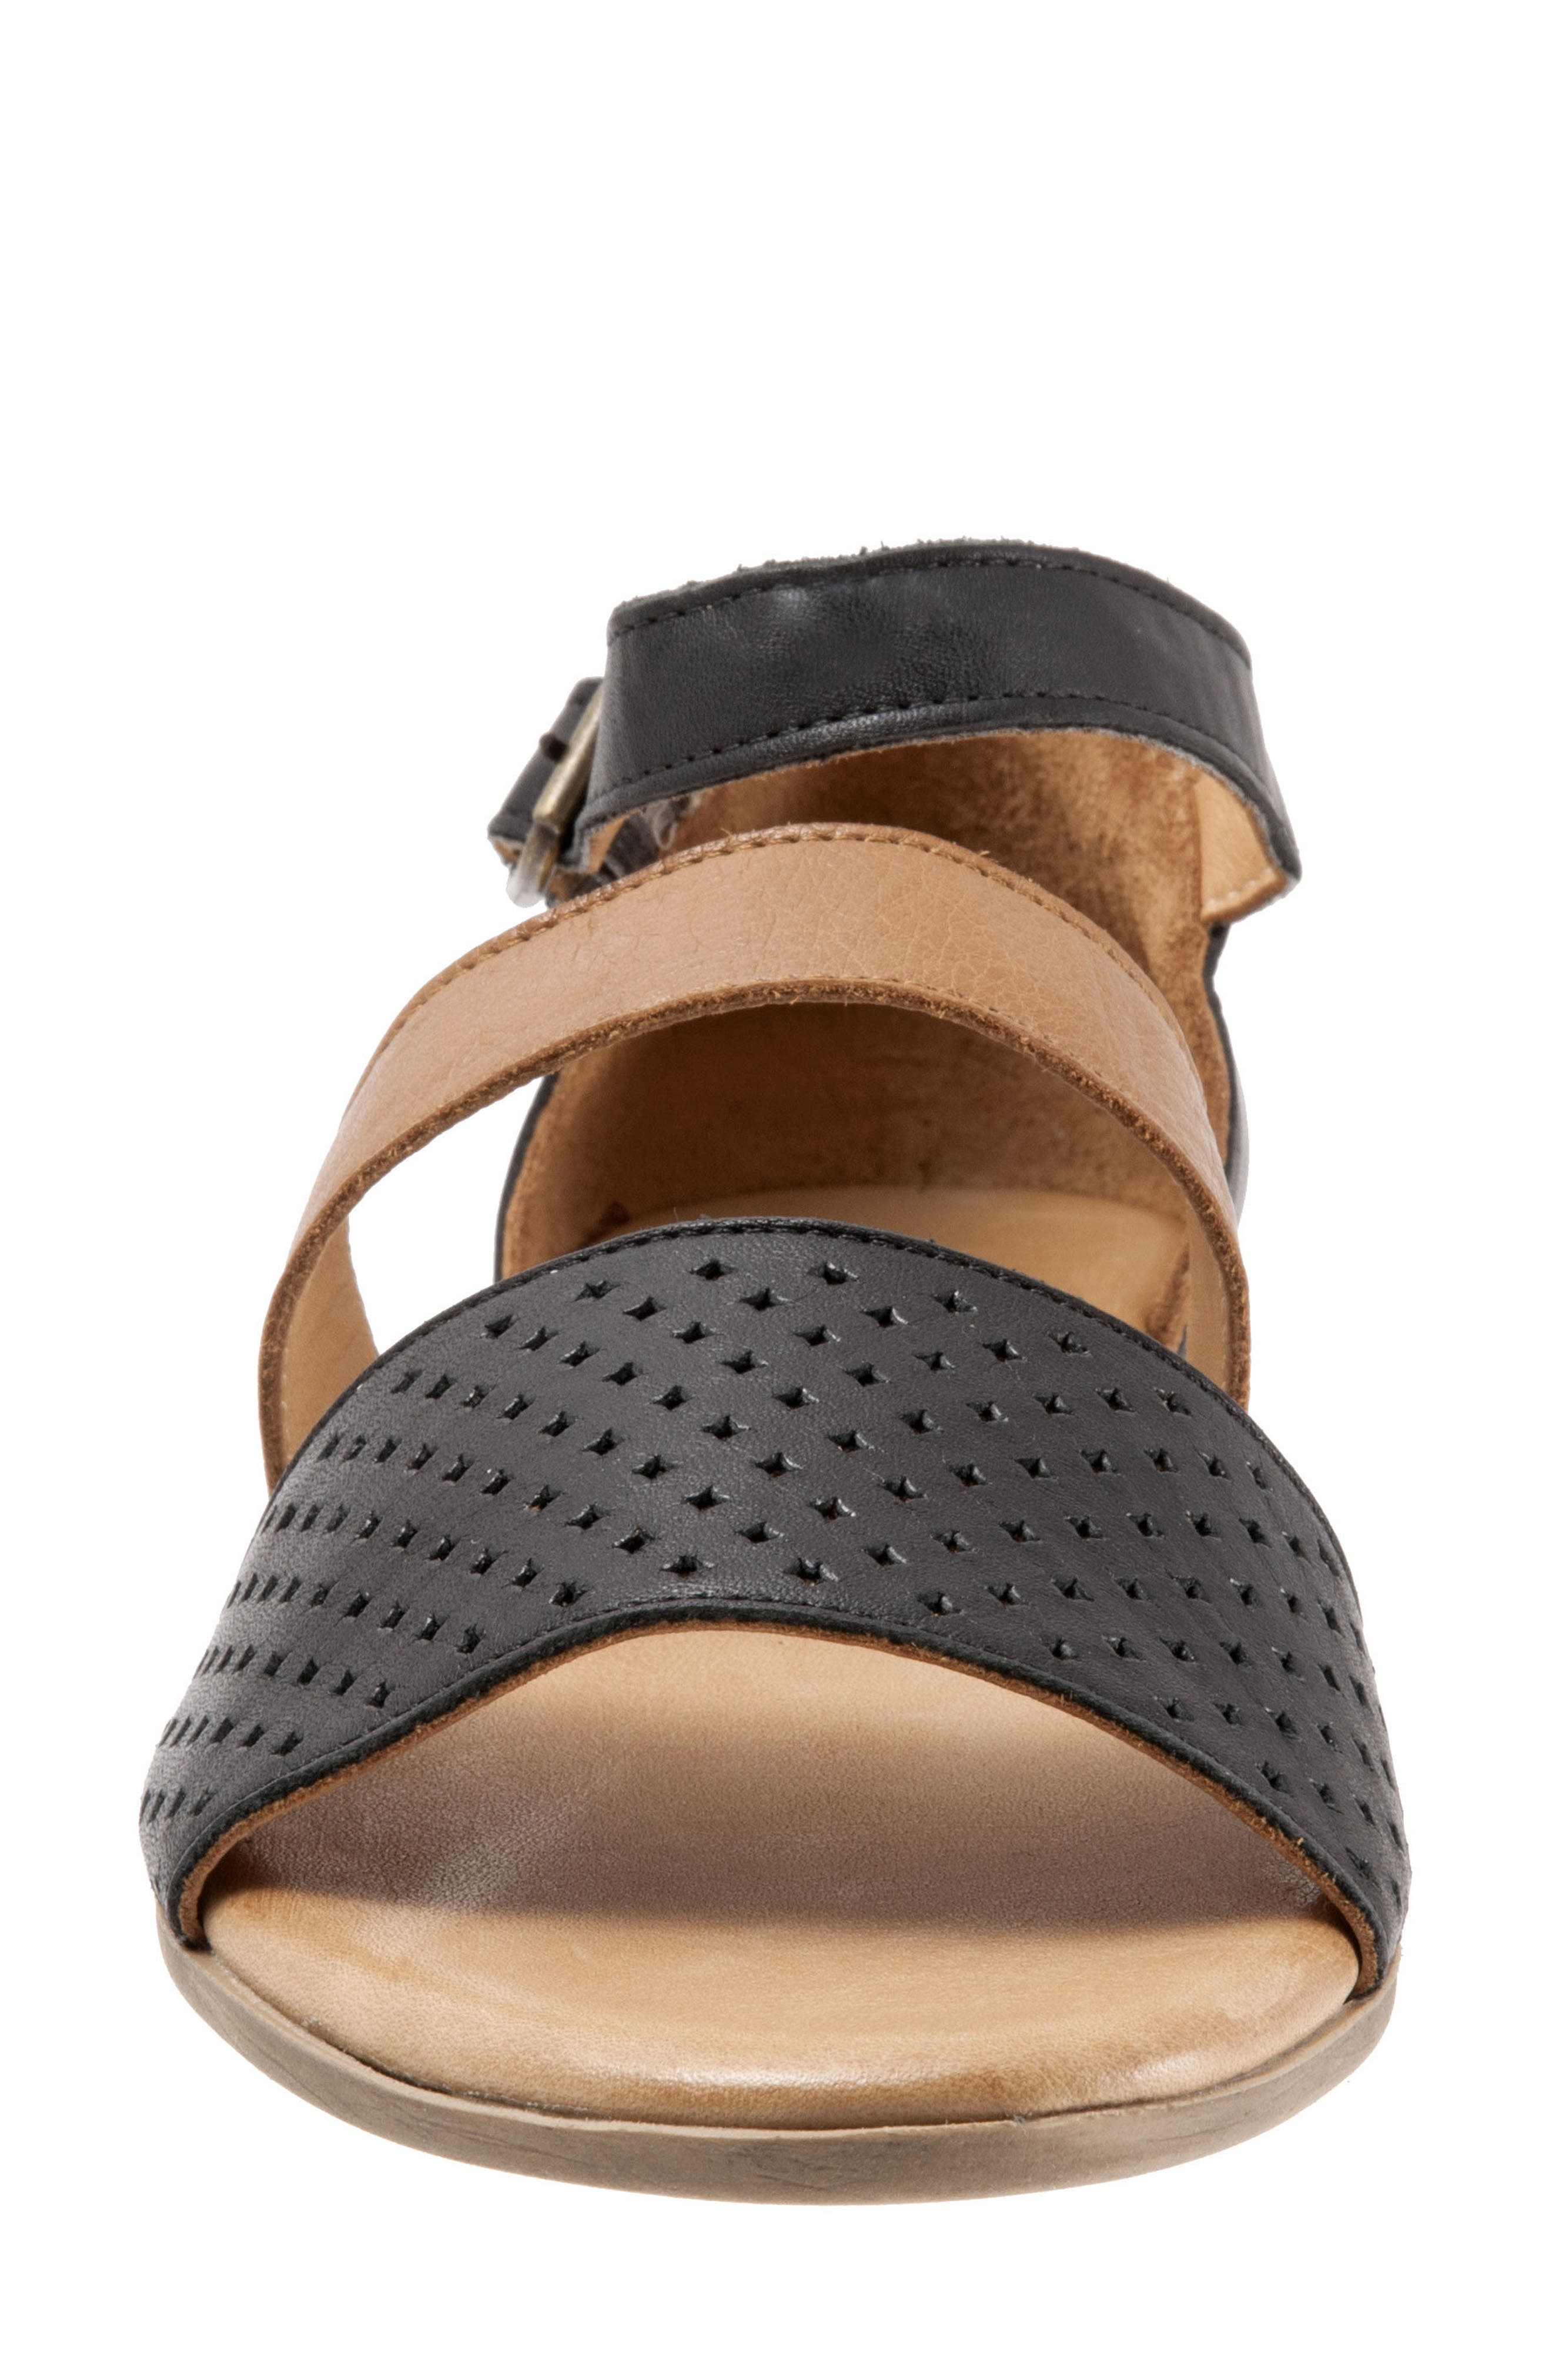 Janet Perforated Flat Sandal,                             Alternate thumbnail 4, color,                             BLACK LEATHER